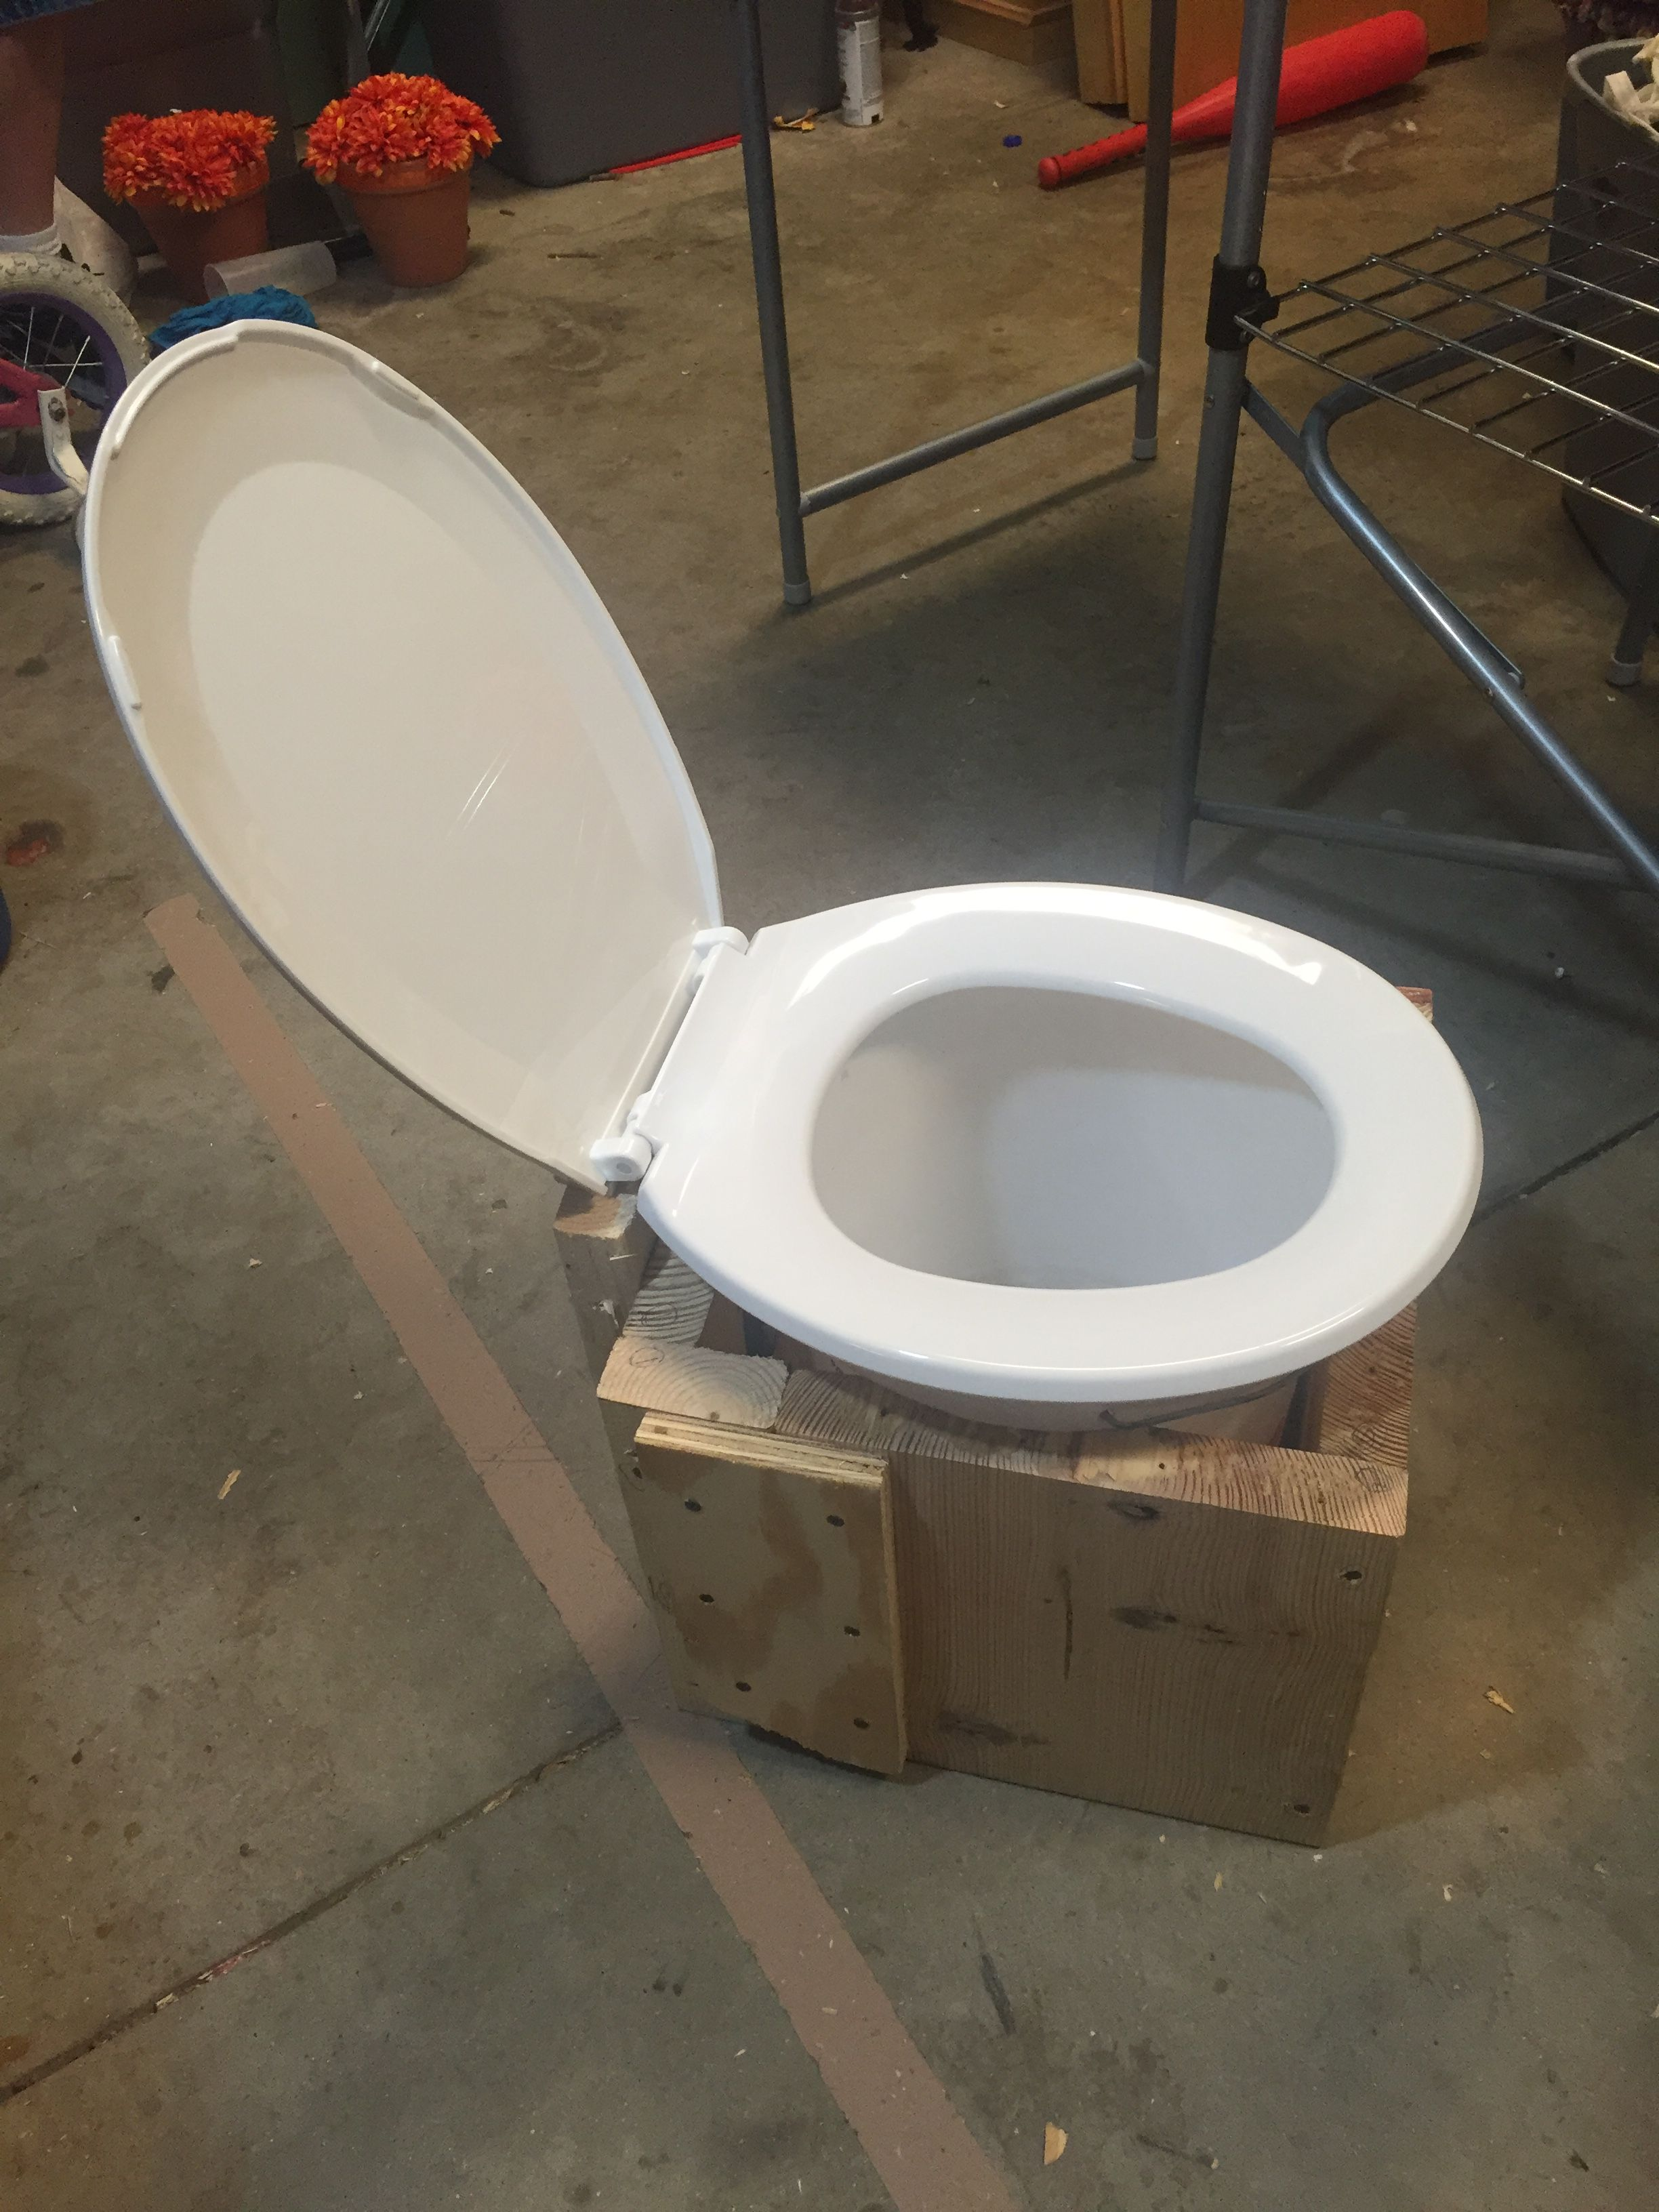 Camping Potty Made From Scrap Wood 5 Gallon Bucket And A Toilet